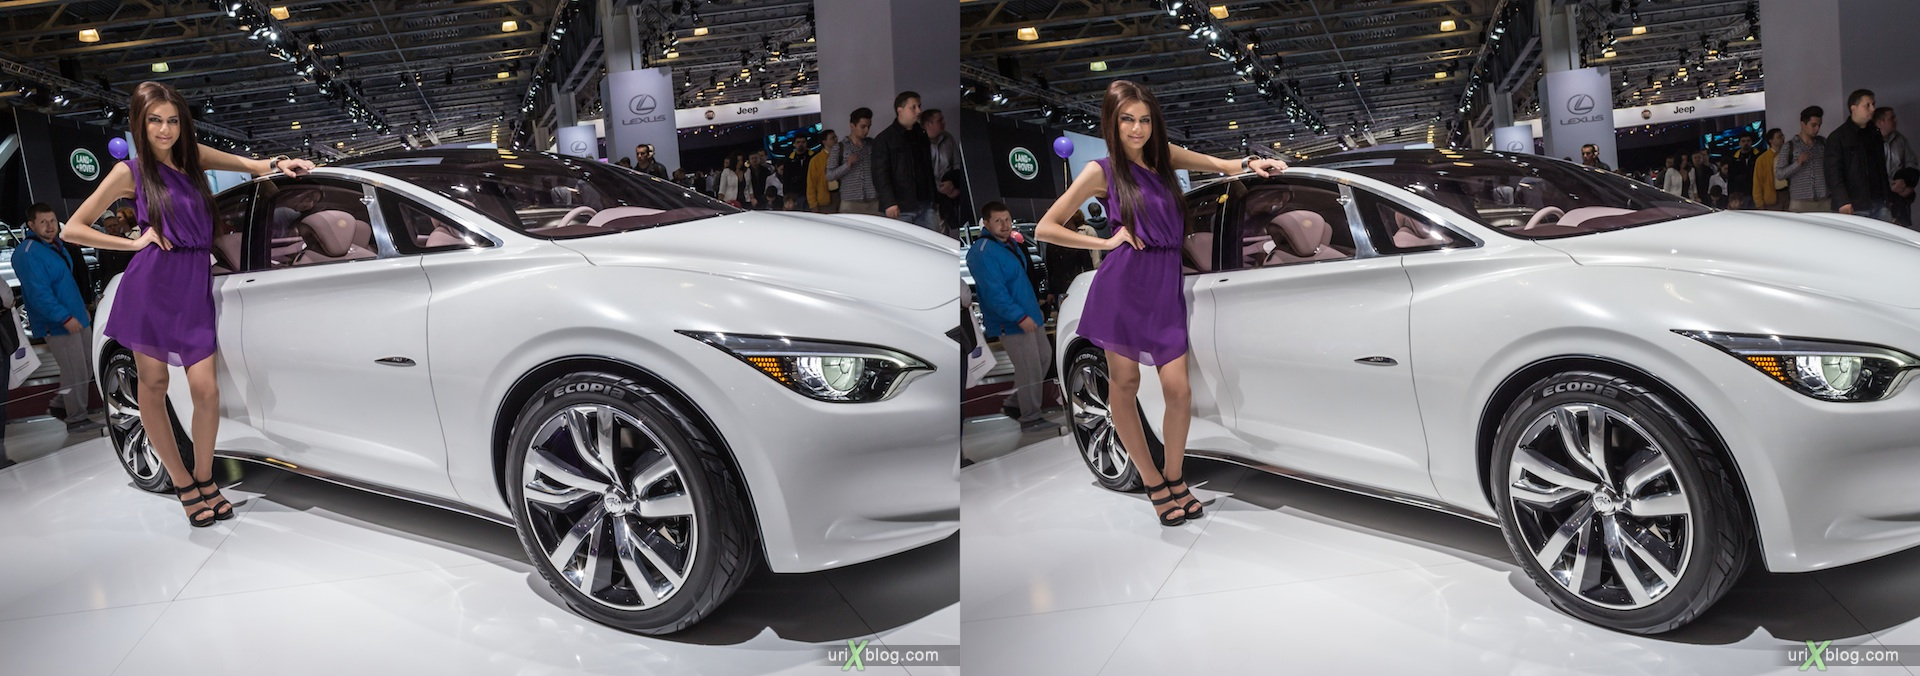 2012, Lexus, девушка, модель, girl, model, Moscow International Automobile Salon, auto show, 3D, stereo pair, cross-eyed, crossview